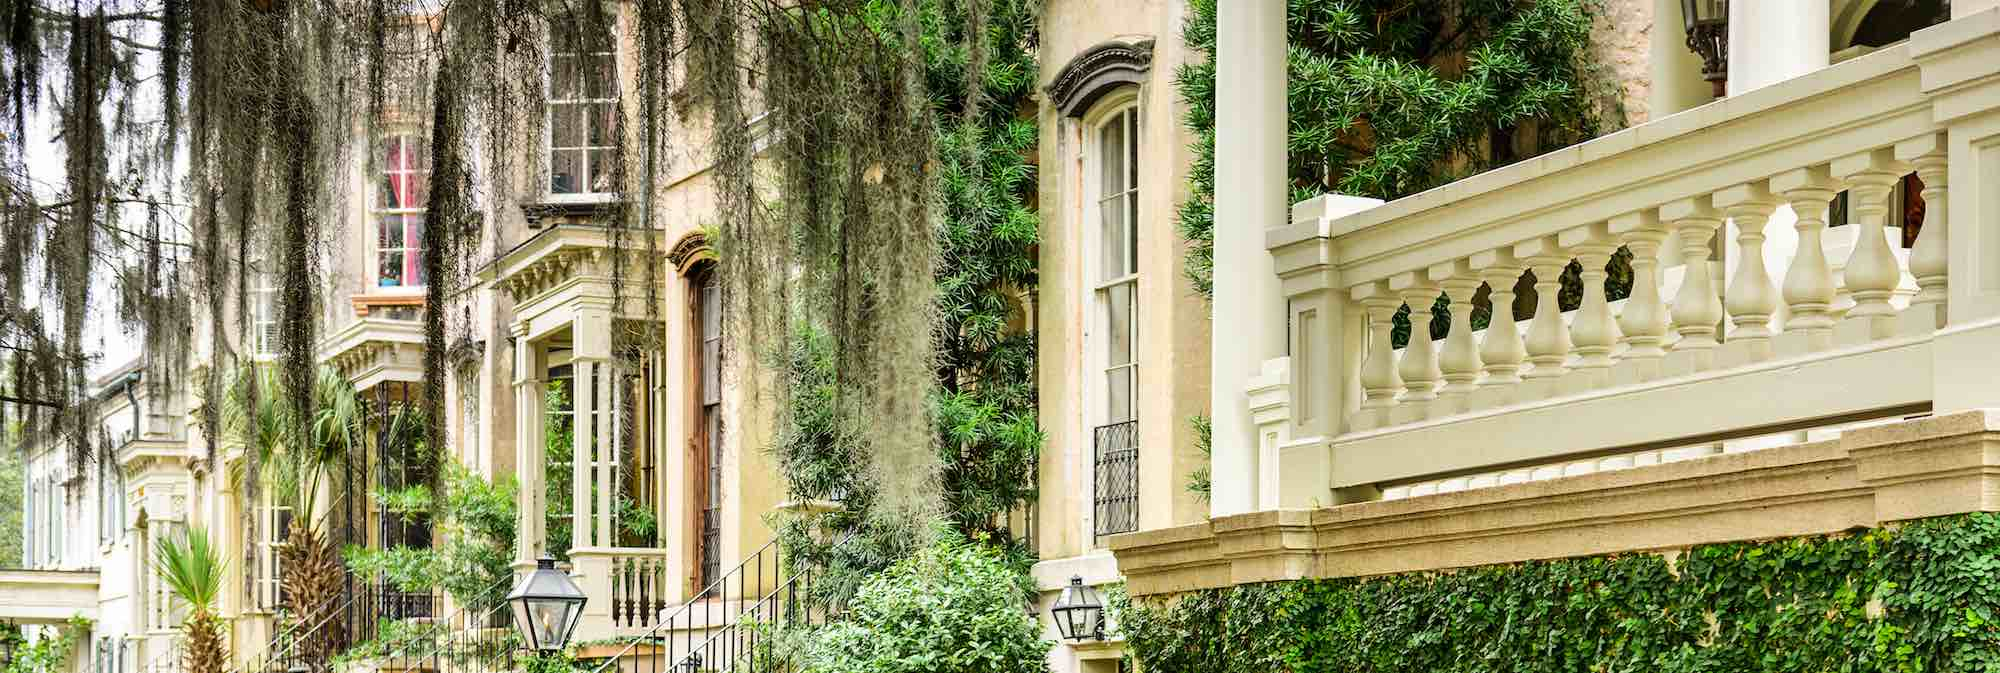 Spanish moss hanging in front of a row of historic townhouses in Savannah, GA.